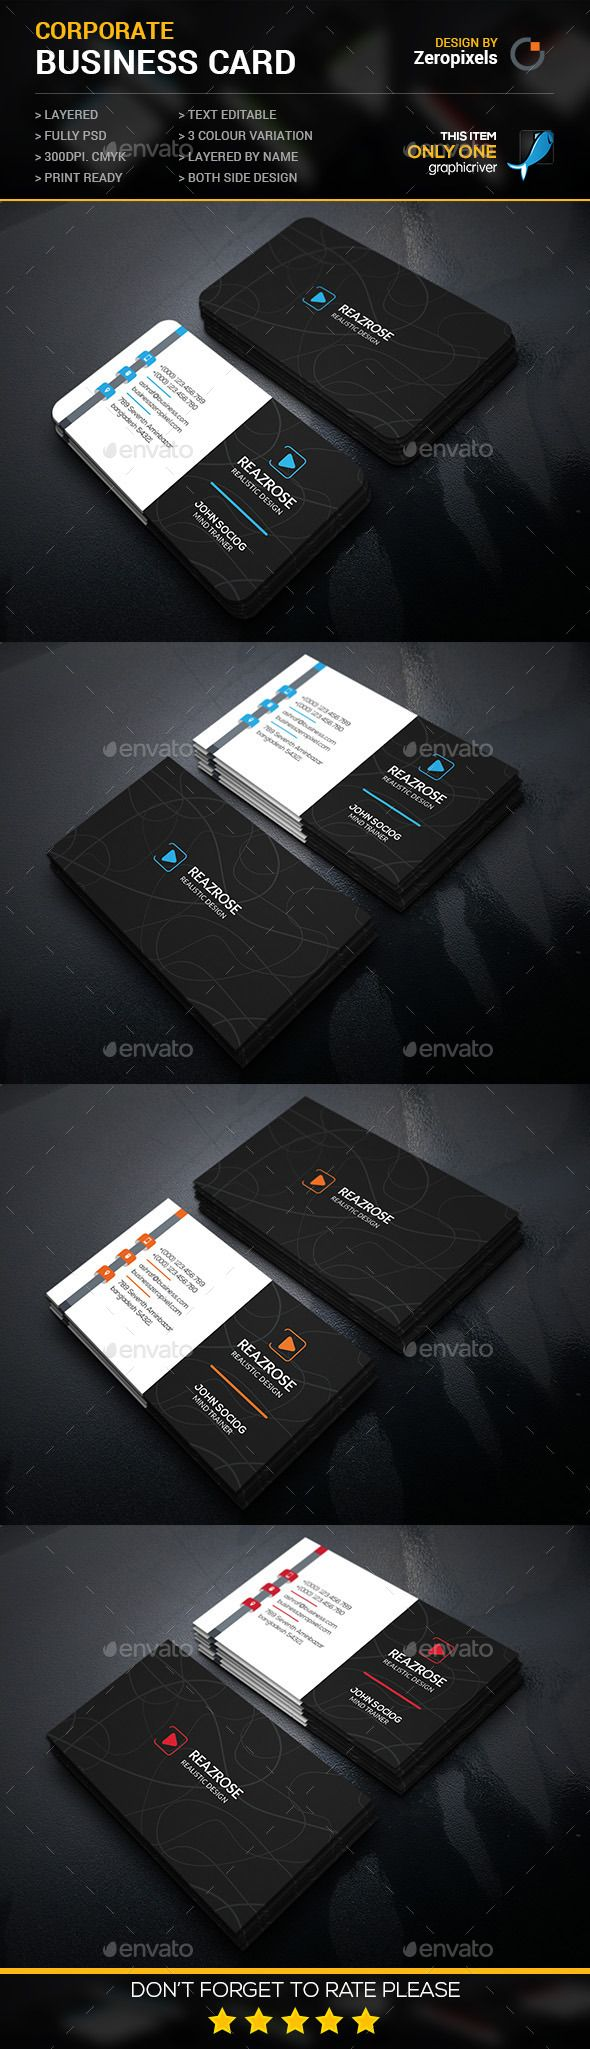 Modern Corporate Business Card Template #design #print Download: http://graphicriver.net/item/modern-corporate-business-card/11930068?ref=ksioks